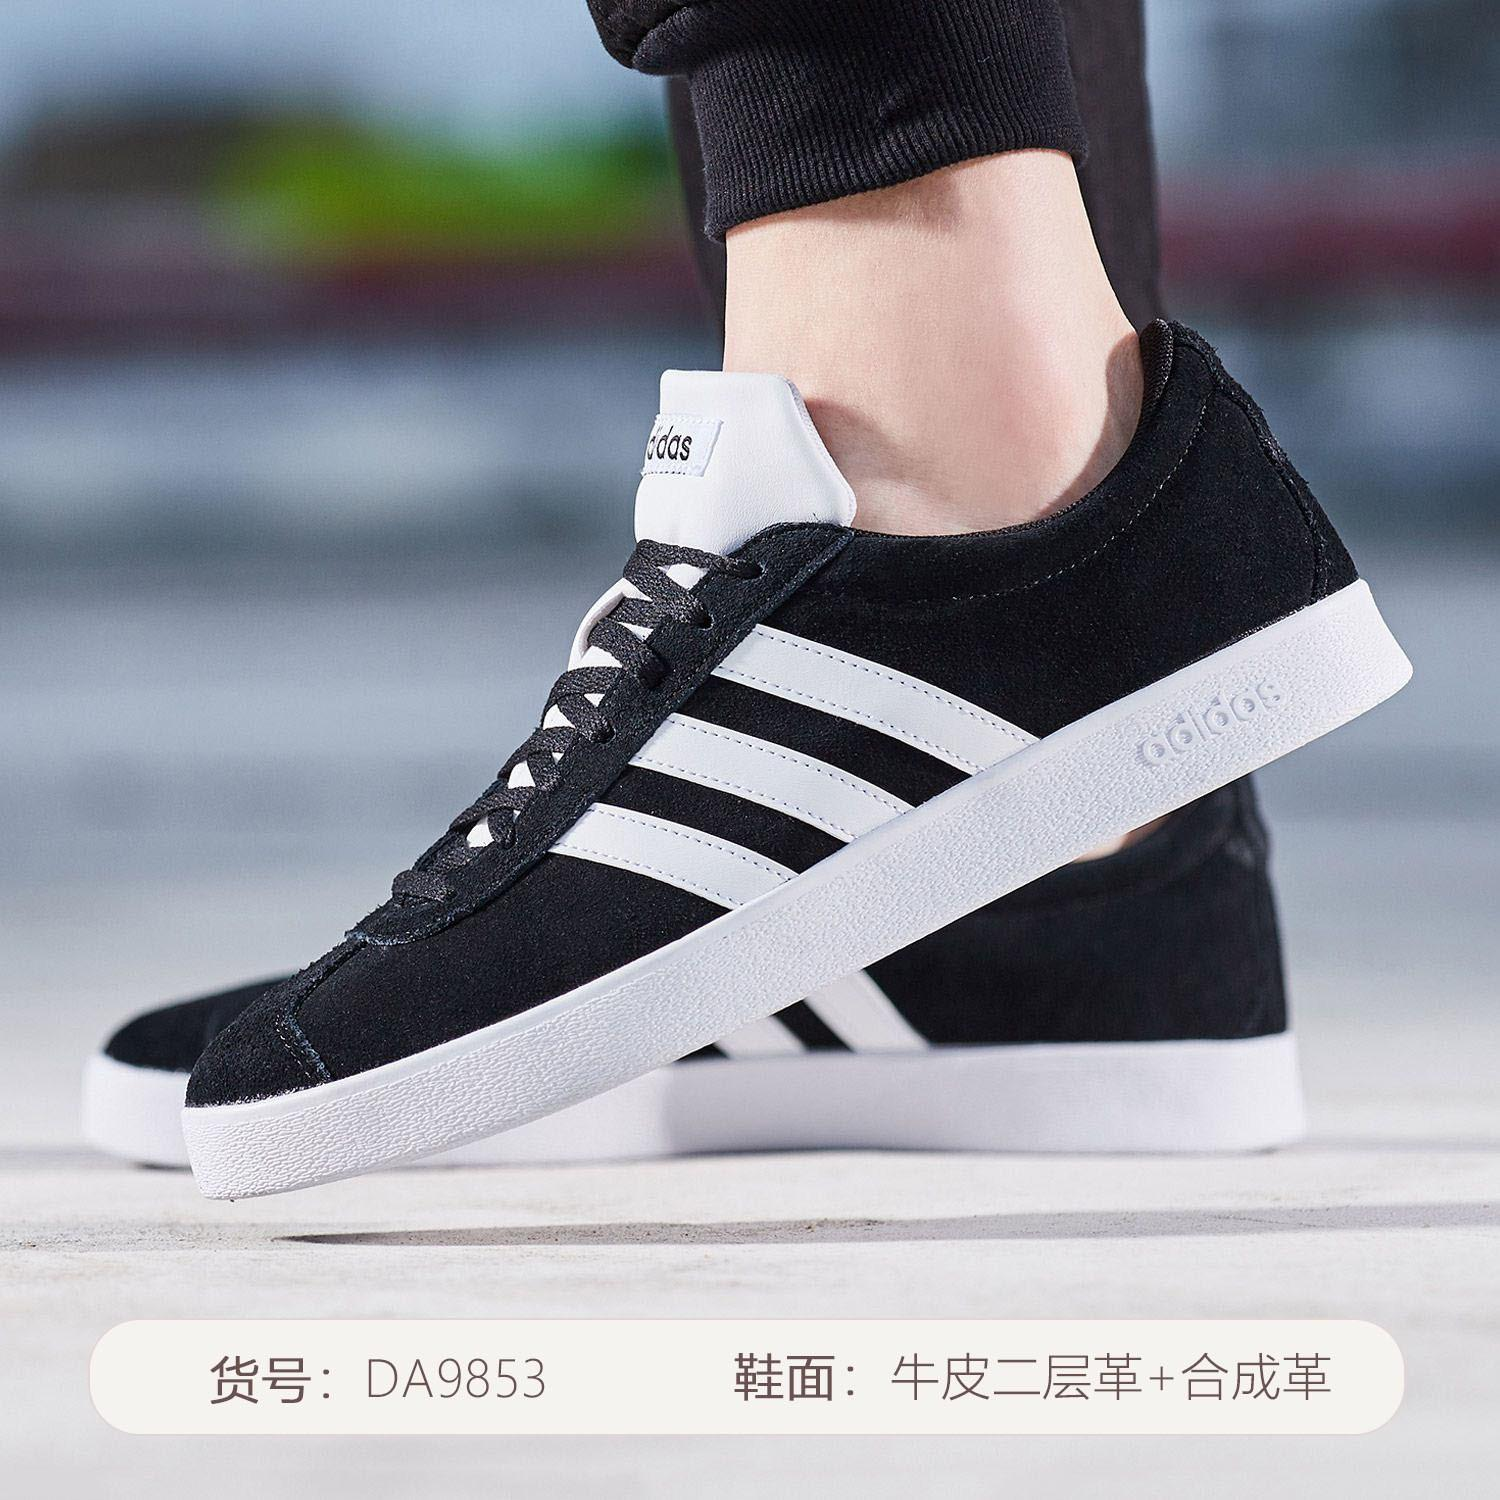 sports shoes d63e8 40dfa Adidas NEO Men s Shoes Low Top Sneakers 2019 New Style Casual Sports Shoes  Sneakers Rubber shoes